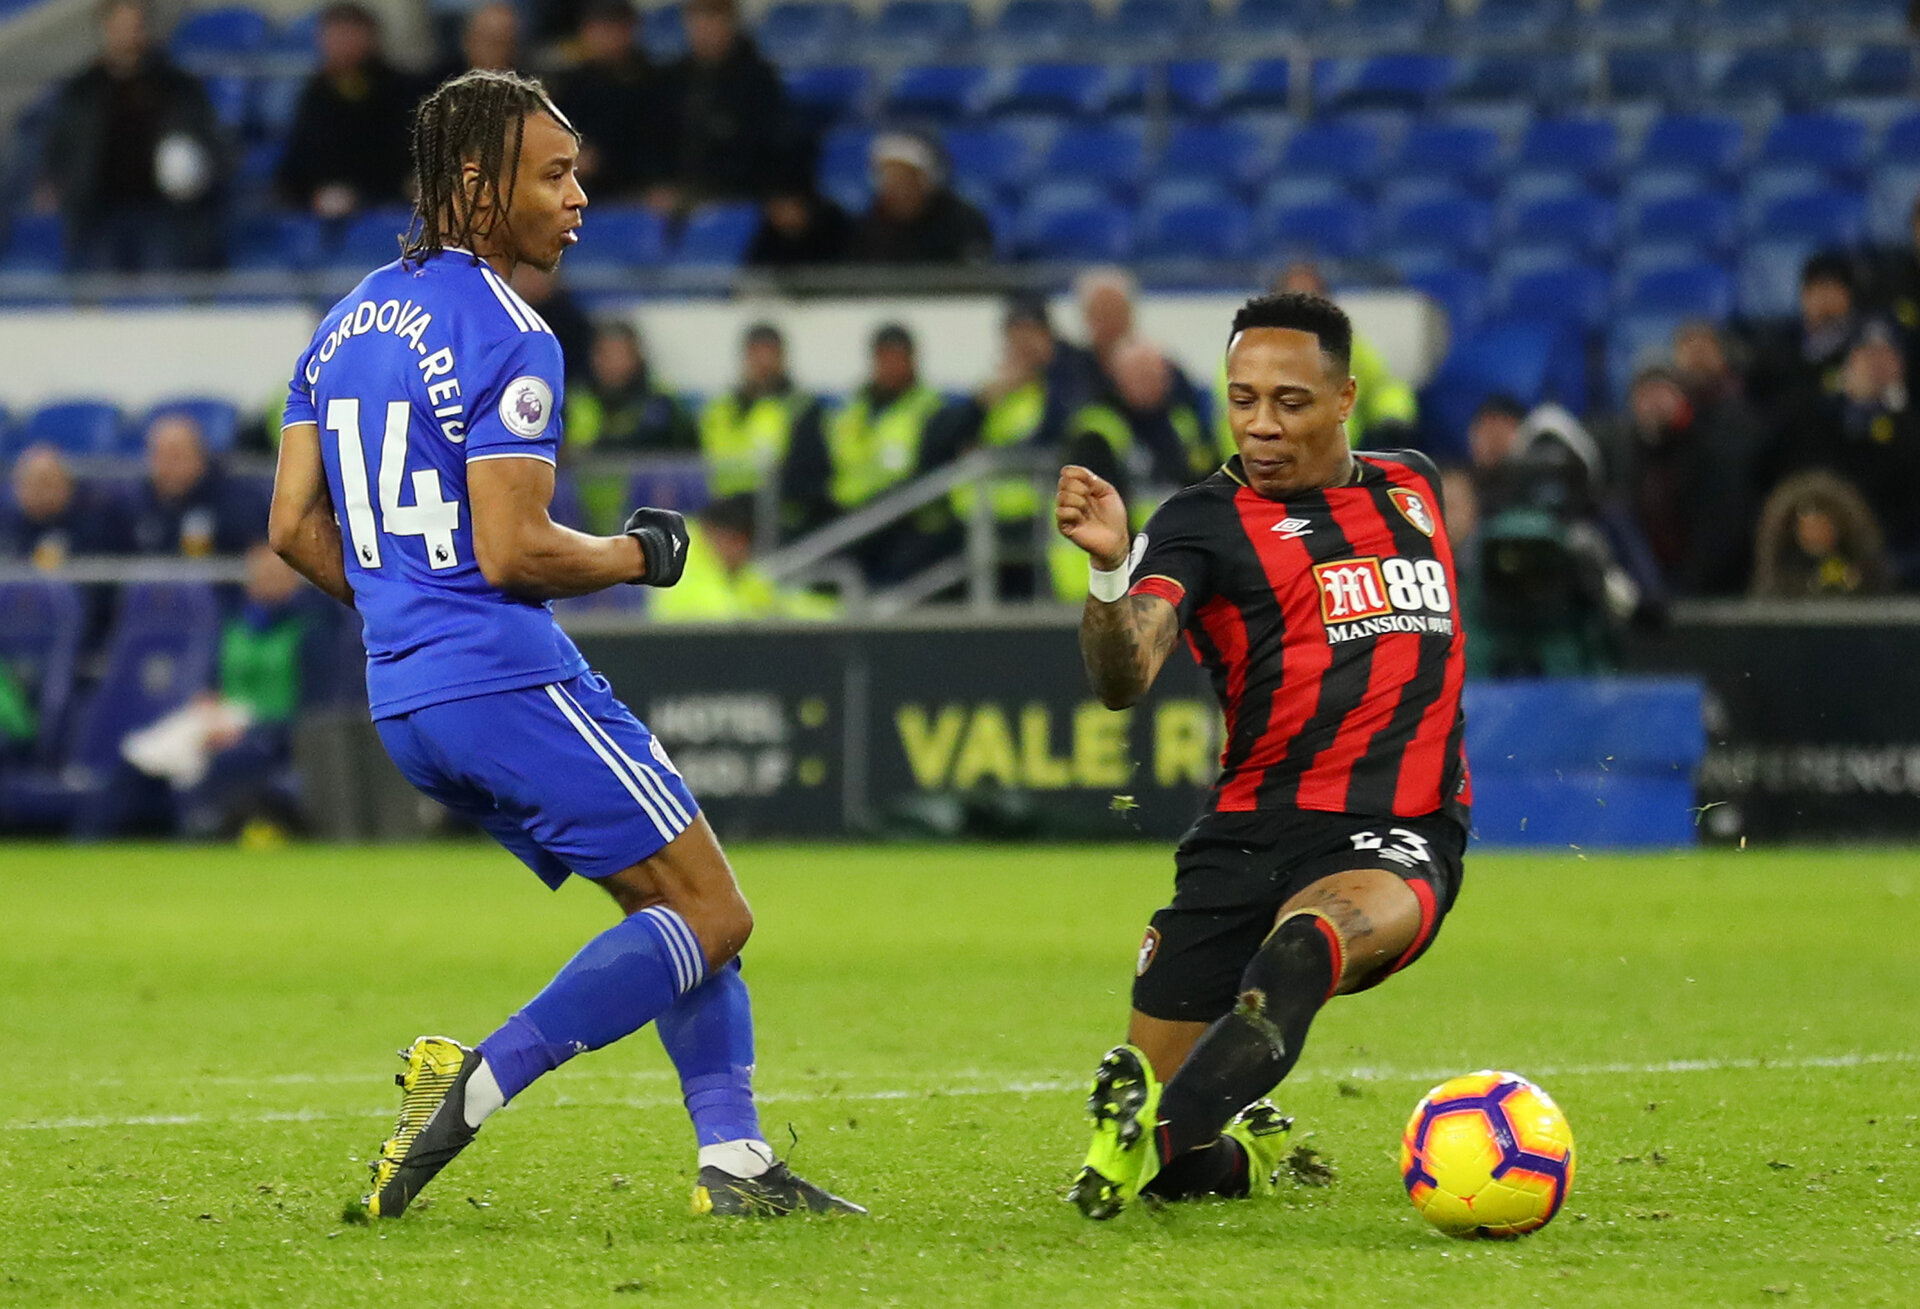 CARDIFF, WALES - FEBRUARY 02:  Bobby Reid of Cardiff City scores his team's second goal during the Premier League match between Cardiff City and AFC Bournemouth at Cardiff City Stadium on February 2, 2019 in Cardiff, United Kingdom.  (Photo by Warren Little/Getty Images)